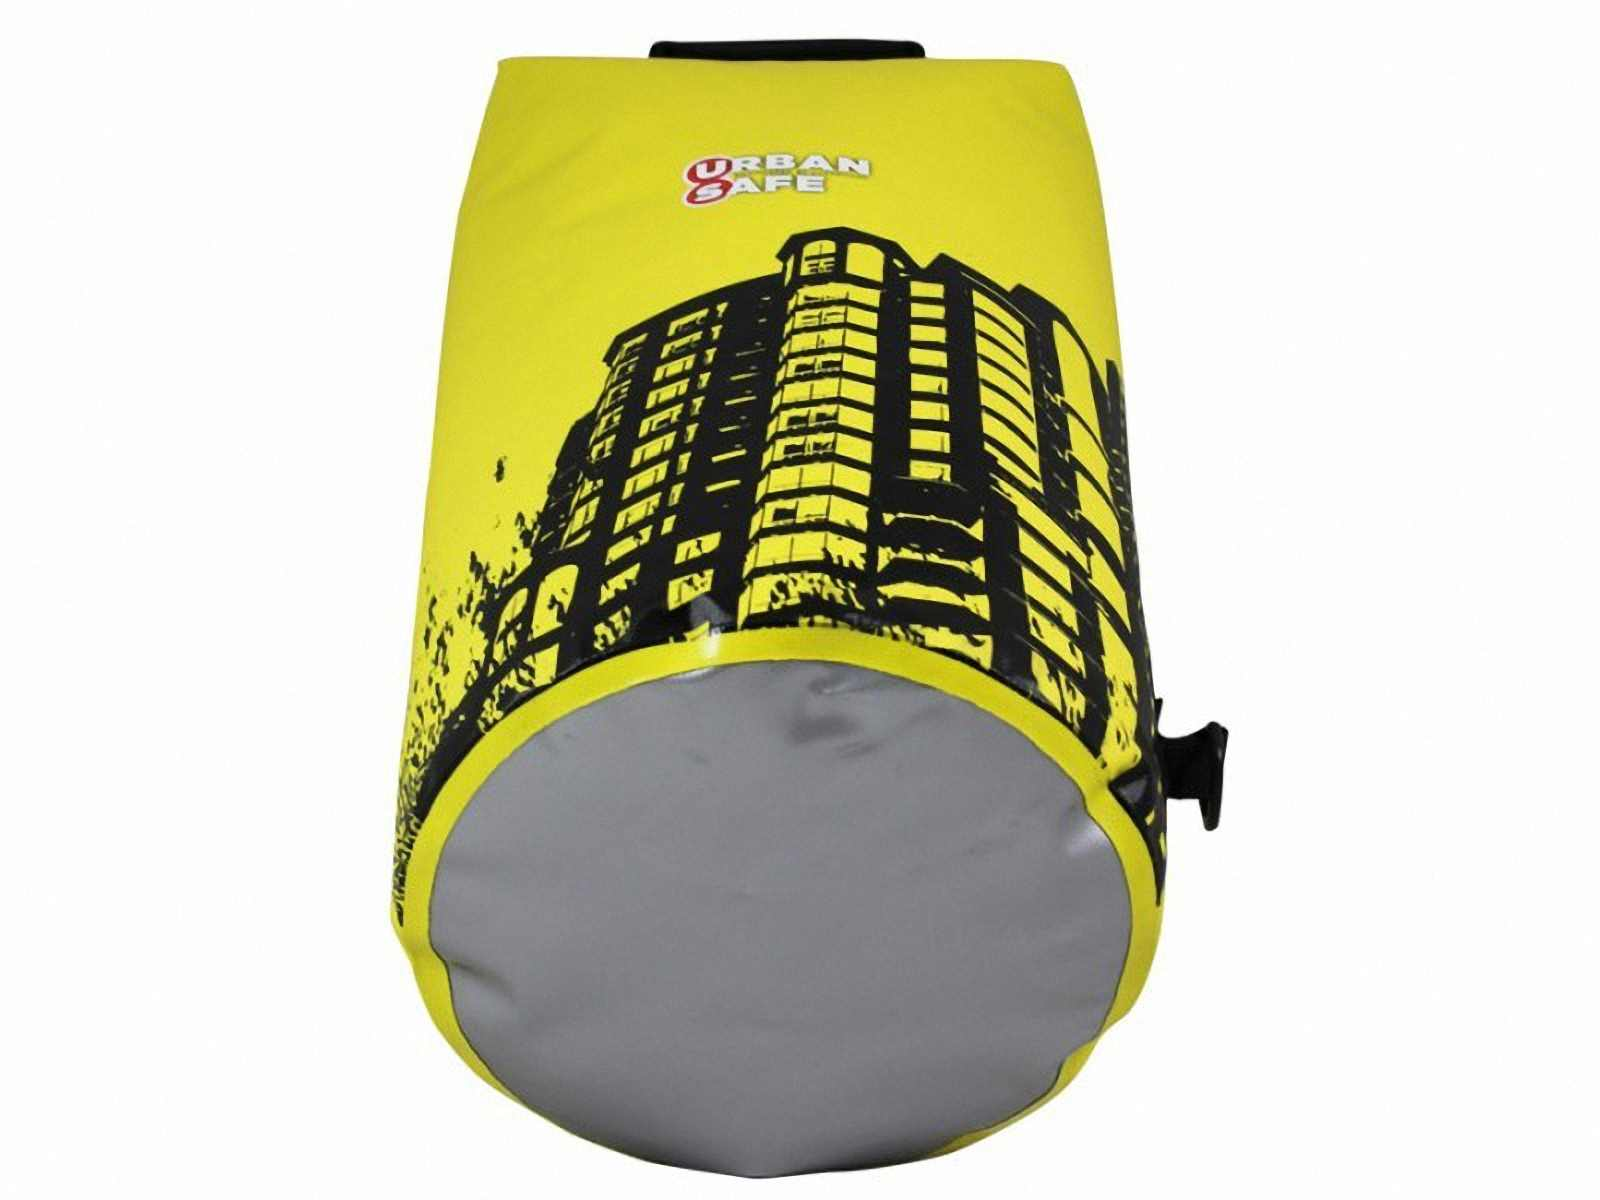 Водонепроницаемая сумка OverBoard US1005Y-Cityscape - Waterproof Dry Tube Bag - 20L. Фото 4